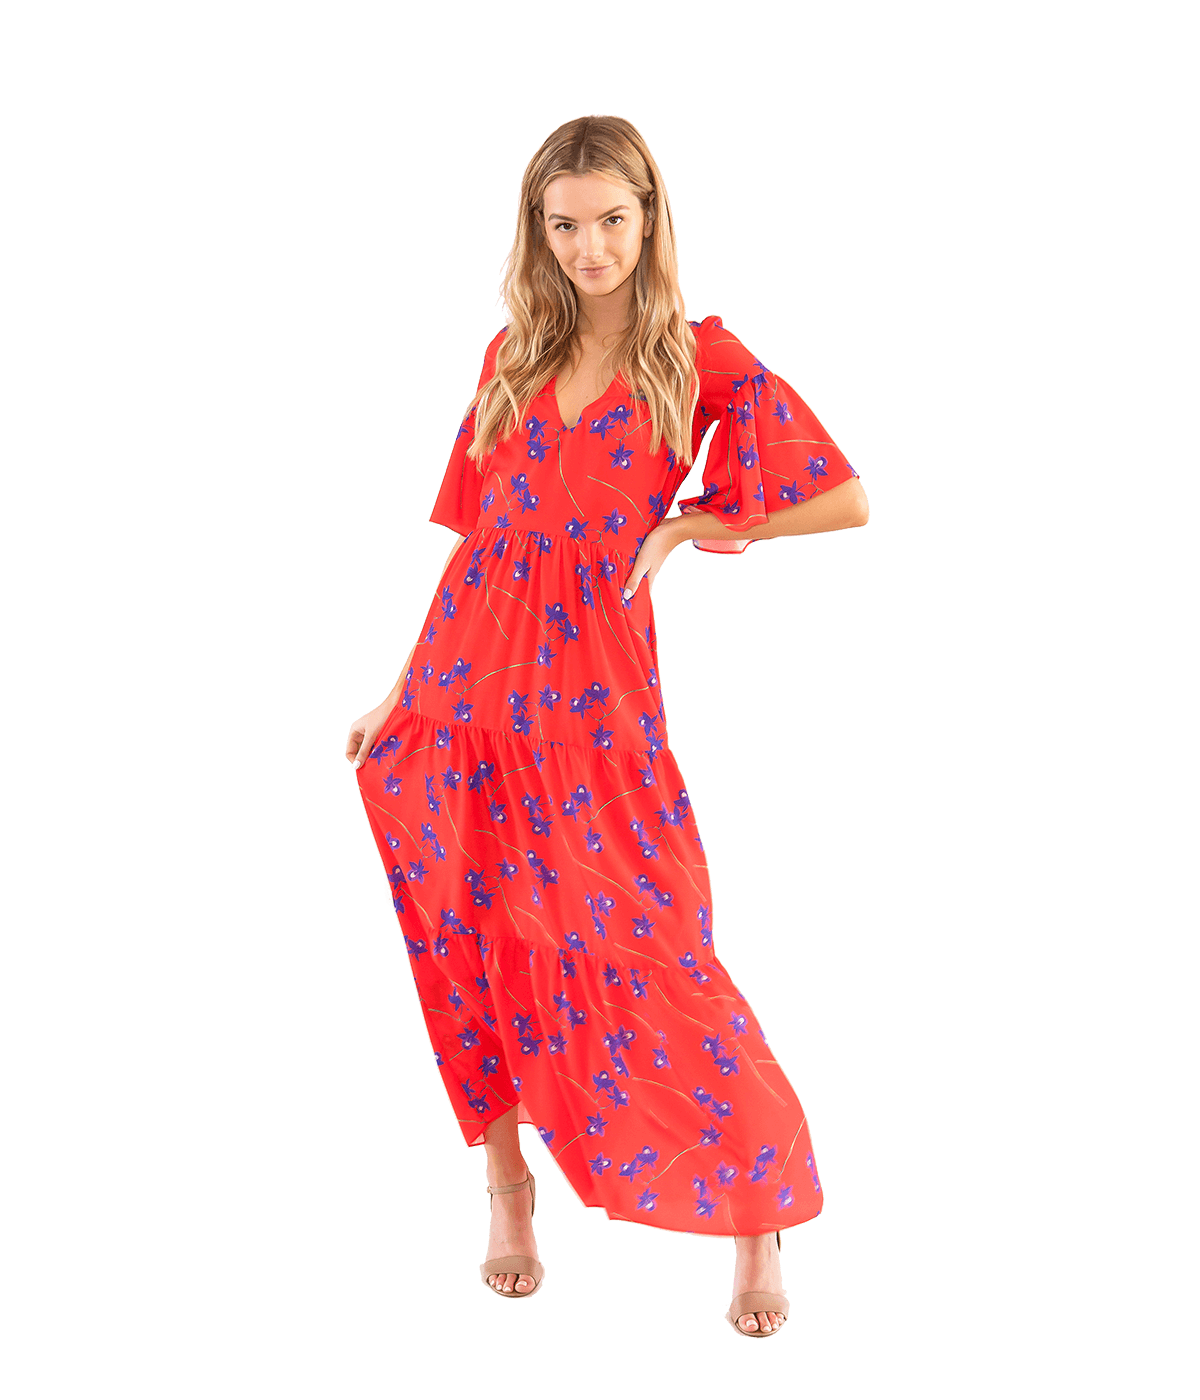 FINAL SALE Red Midi Printed Dress - Lady Jetset